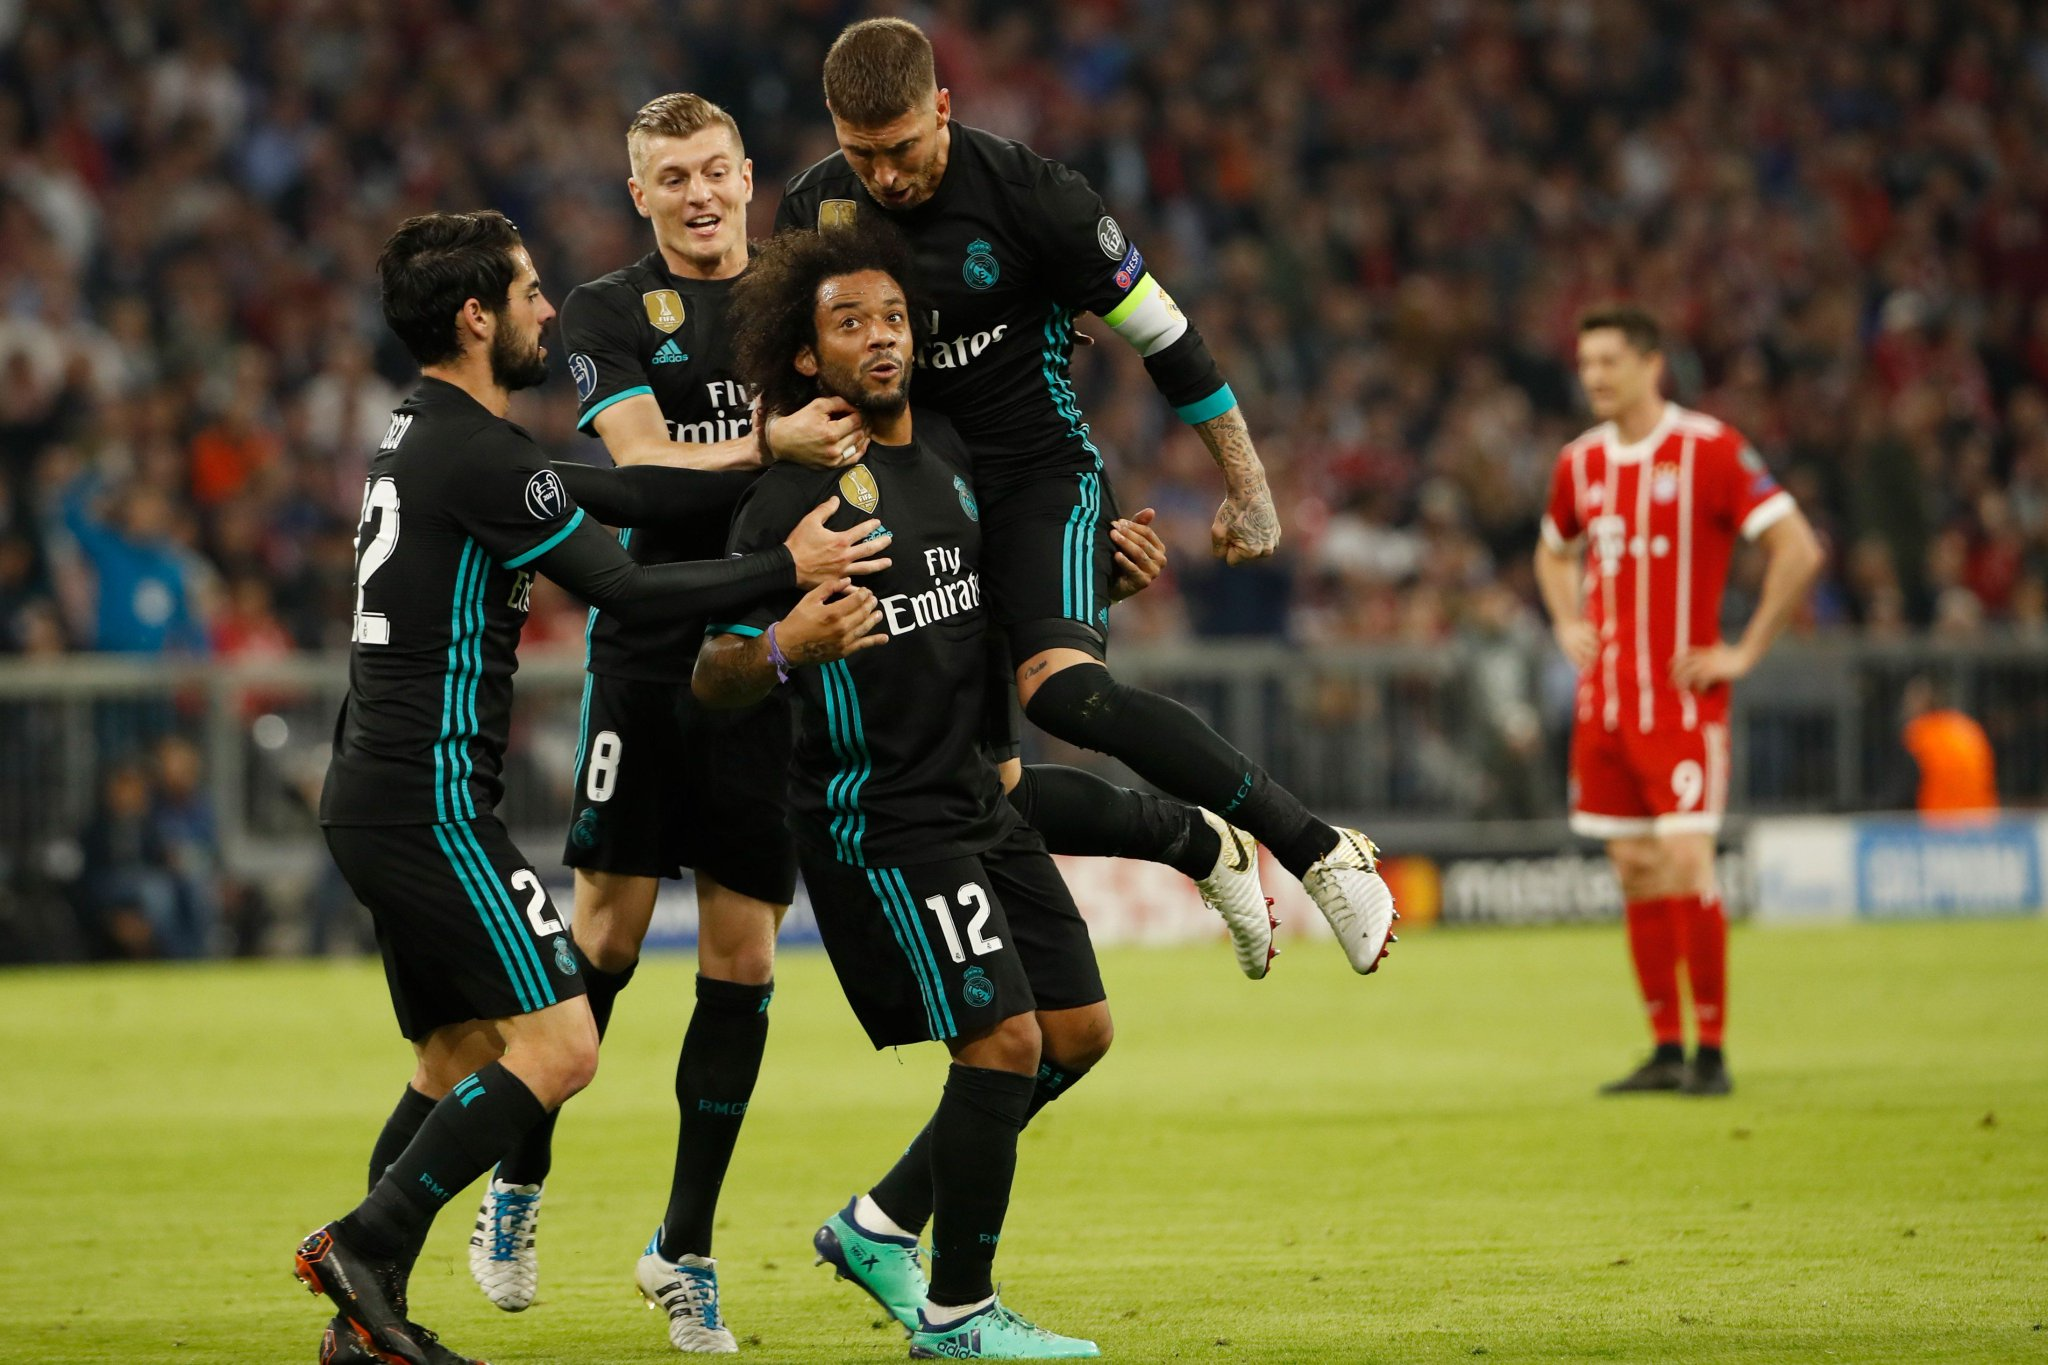 Top-scoring defenders in the knockout stages:  7⃣⚽️ Marcelo  6⃣⚽️ Sergio Ramos   #UCL https://t.co/Xud44wNAf1